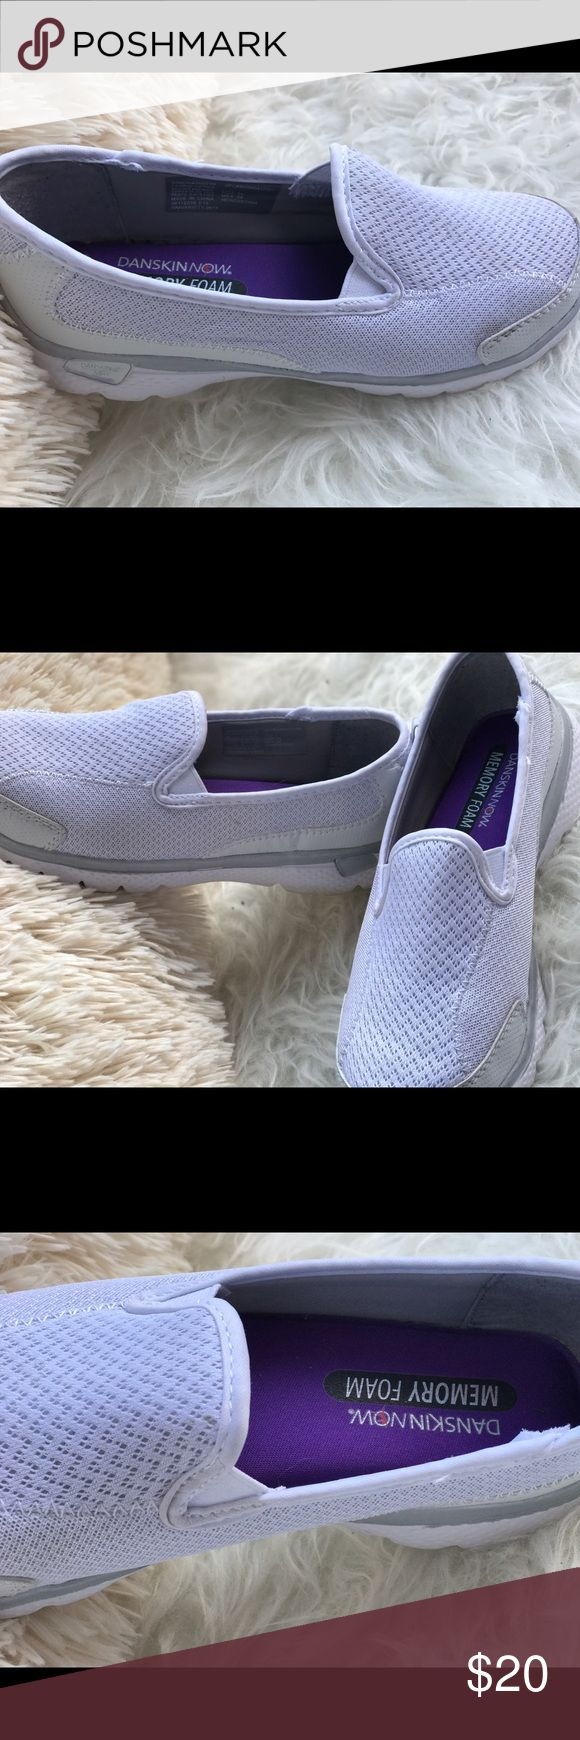 Memory Foam Sneakers 👟 | White Light and baby 👶 comfortable to the feel & feet. | Size 7 Danskin Now Shoes Sneakers